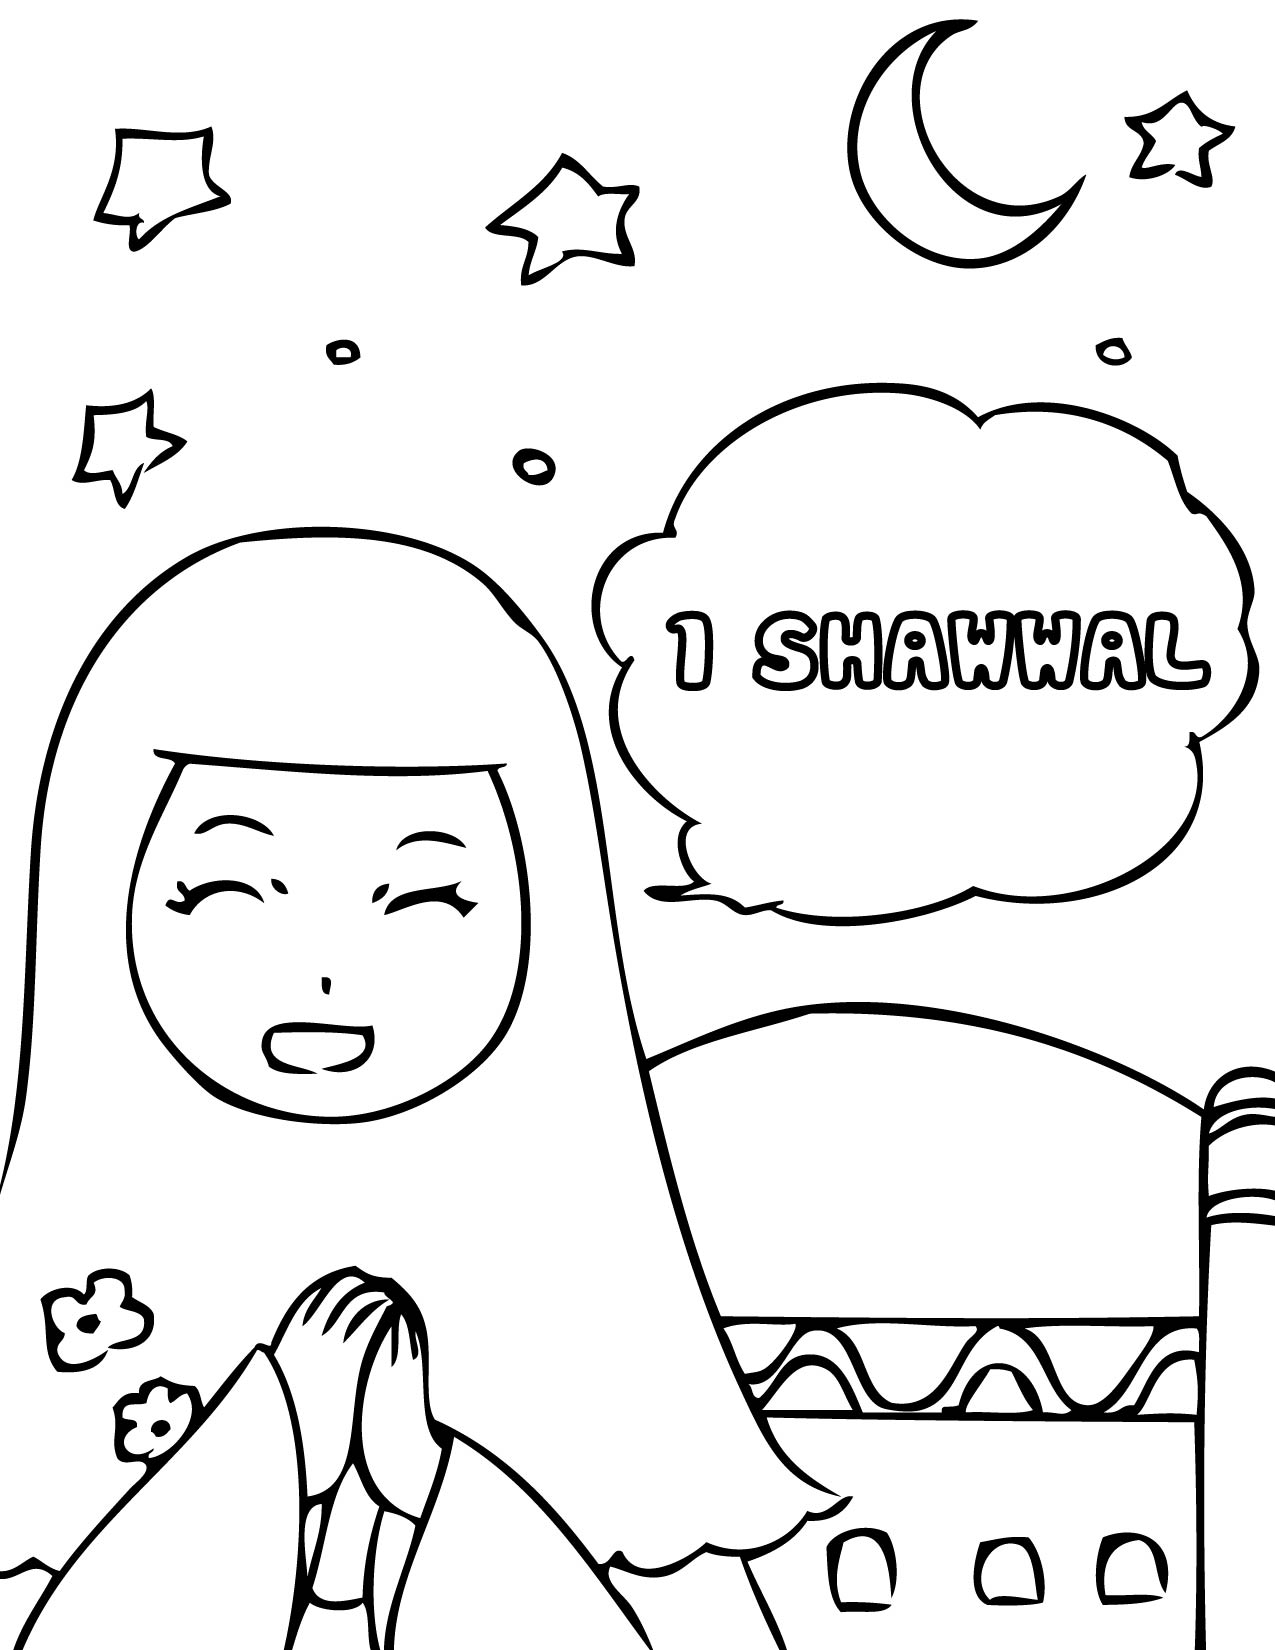 Eid colouring in sheets - Eid Coloring Page For Kids Family Holiday Net Guide To